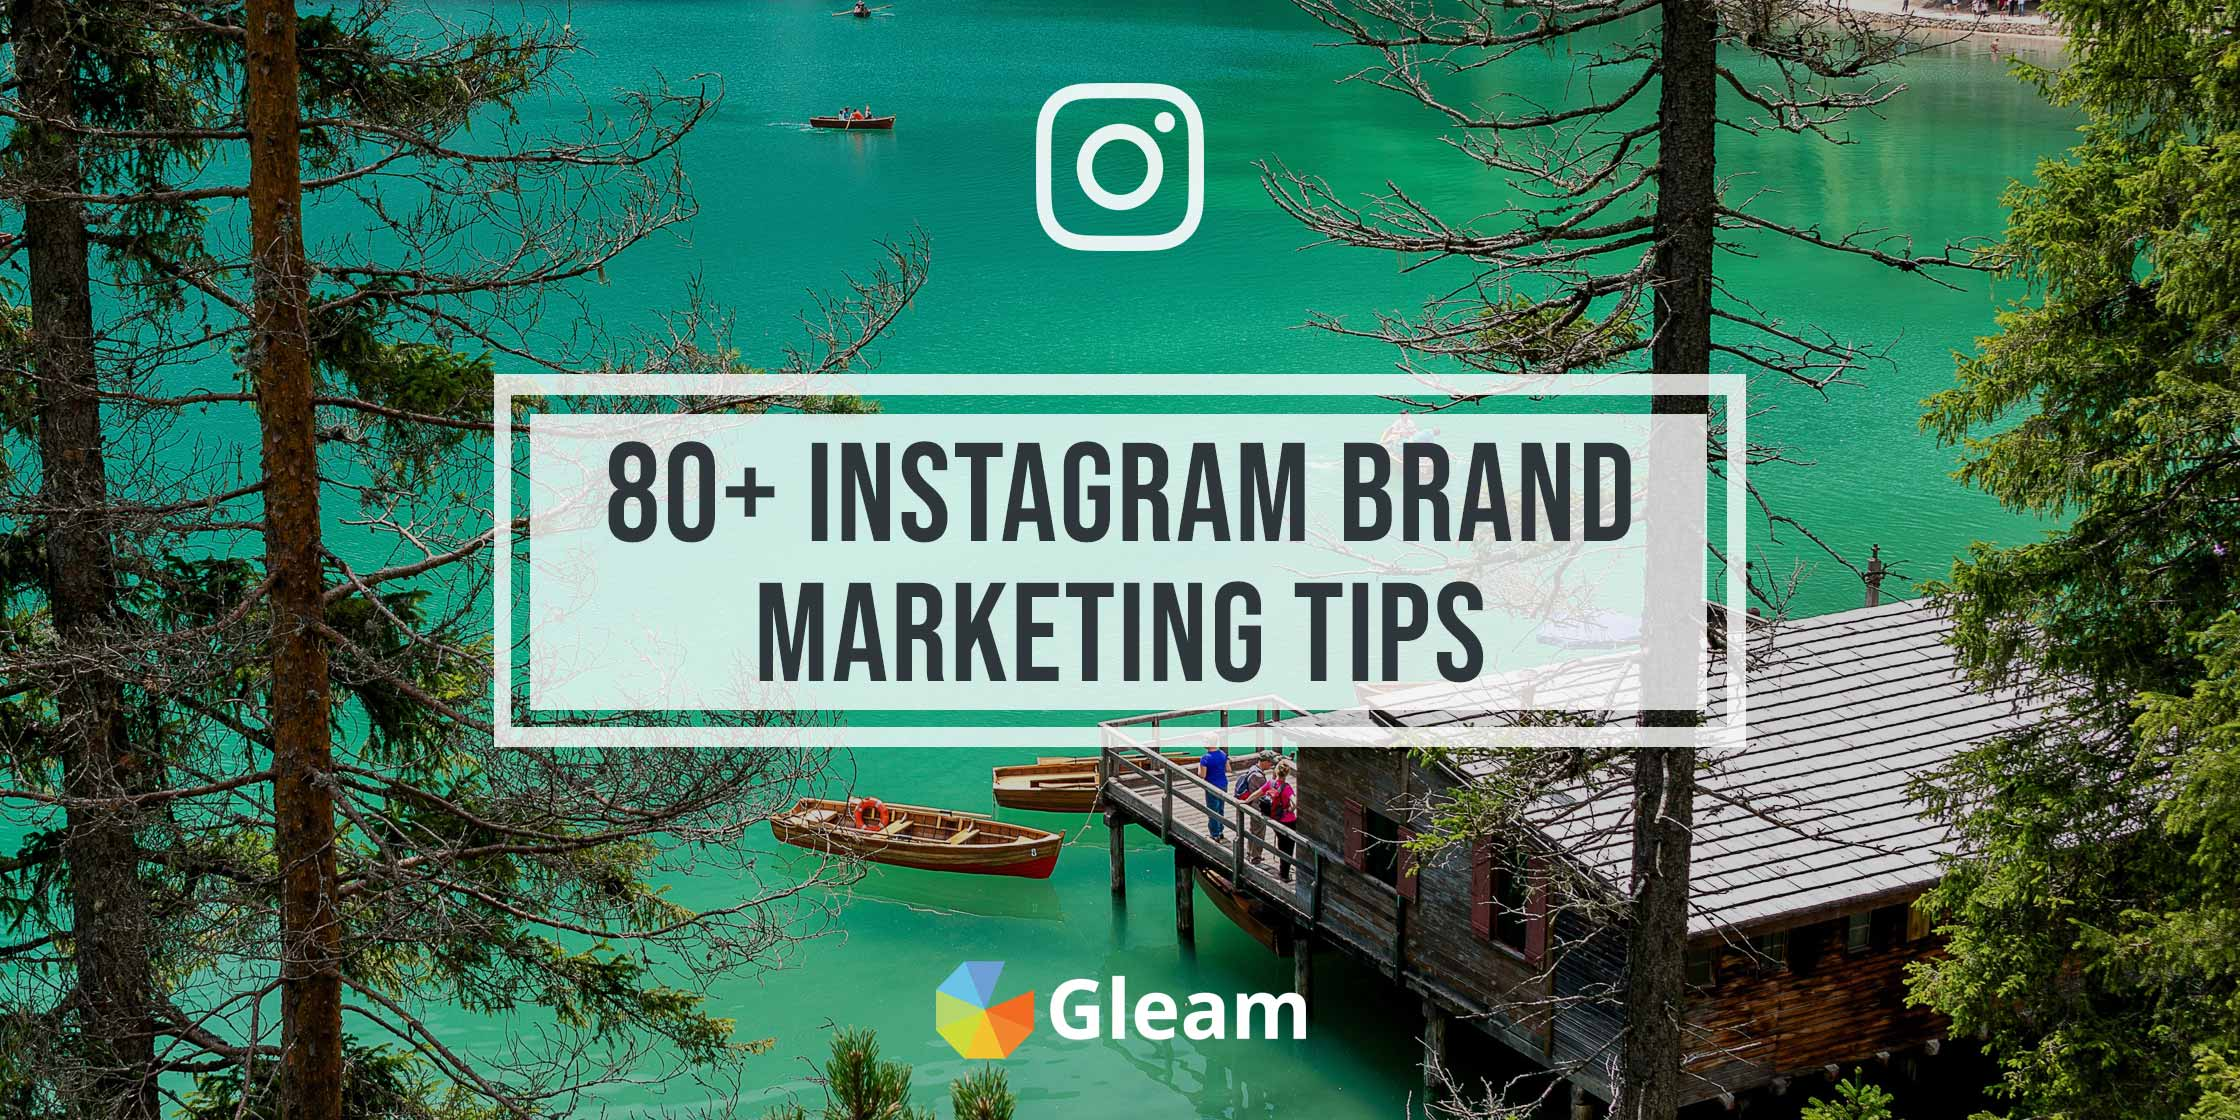 The Ultimate 2019 Instagram Idea List: 80+ Tips for Effectively Marketing Your Brand